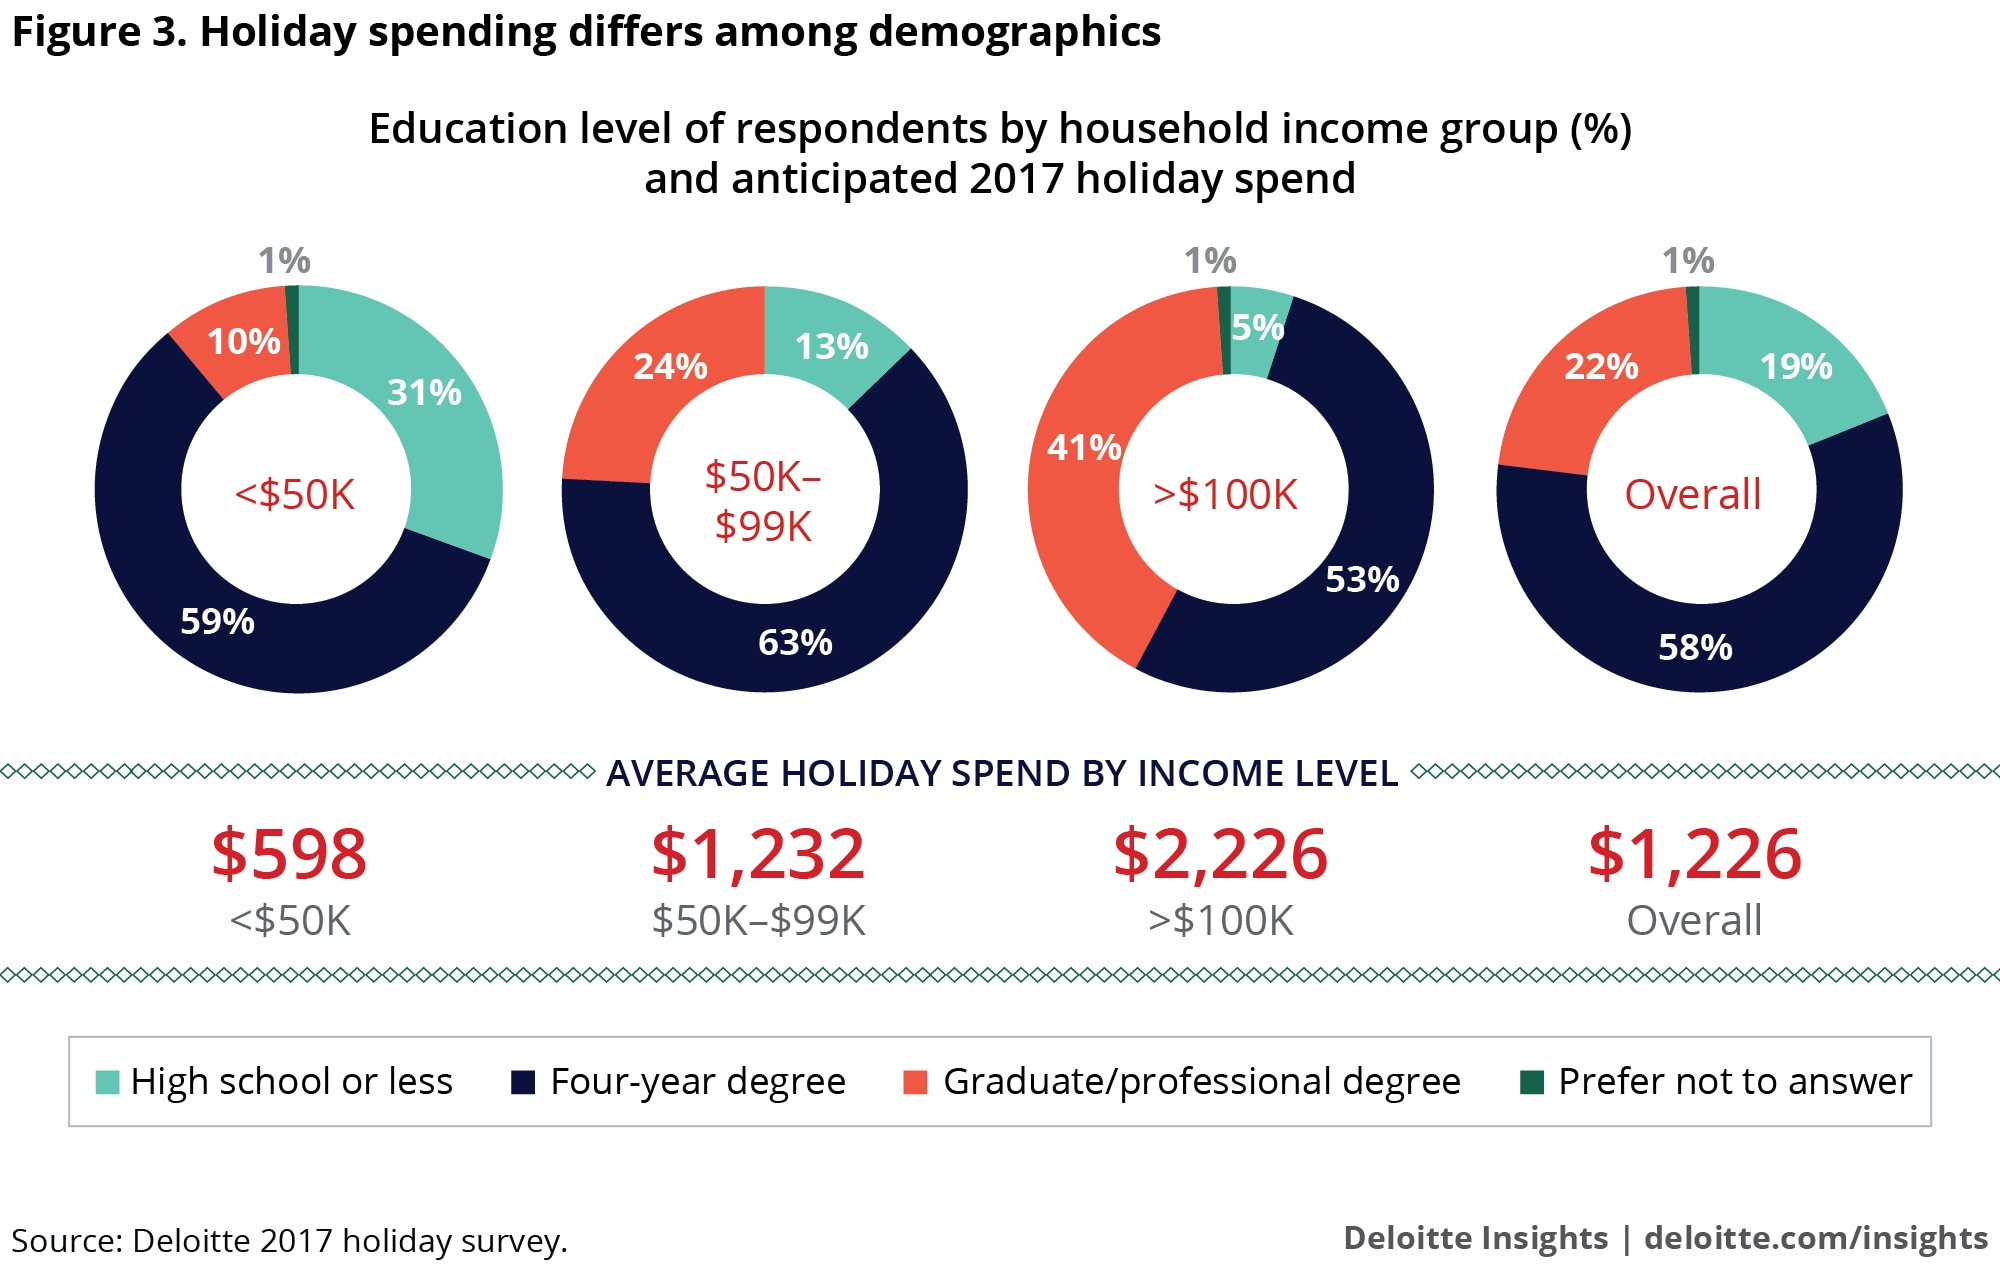 Holiday spending differs among demographics